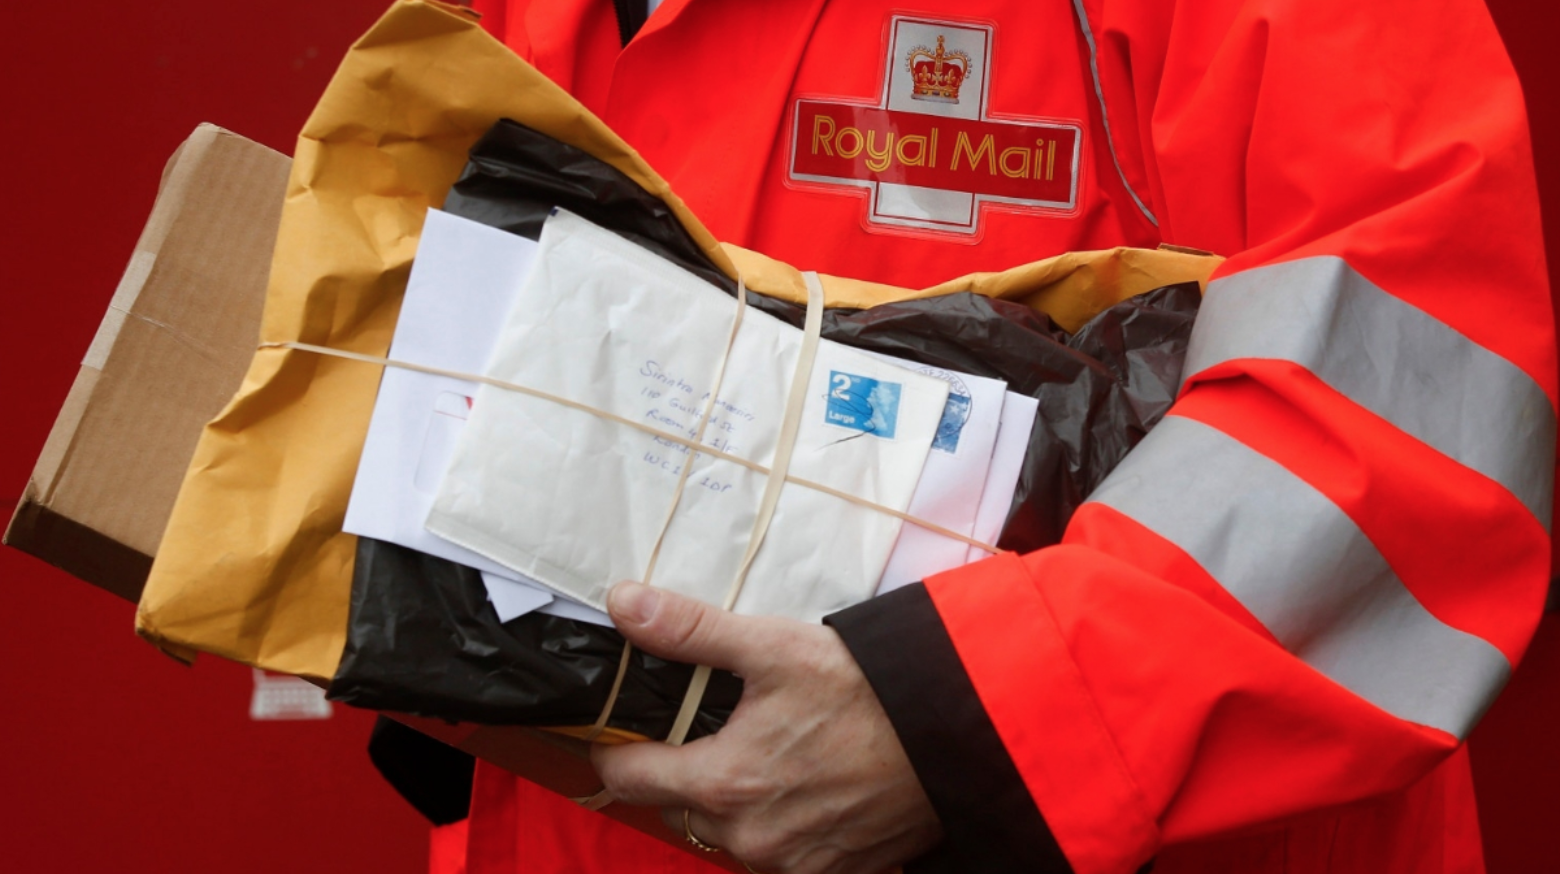 Above: Safeguarding a highly regular and efficient postal service from Royal Mail is of paramount importance to the UK greeting card industry.